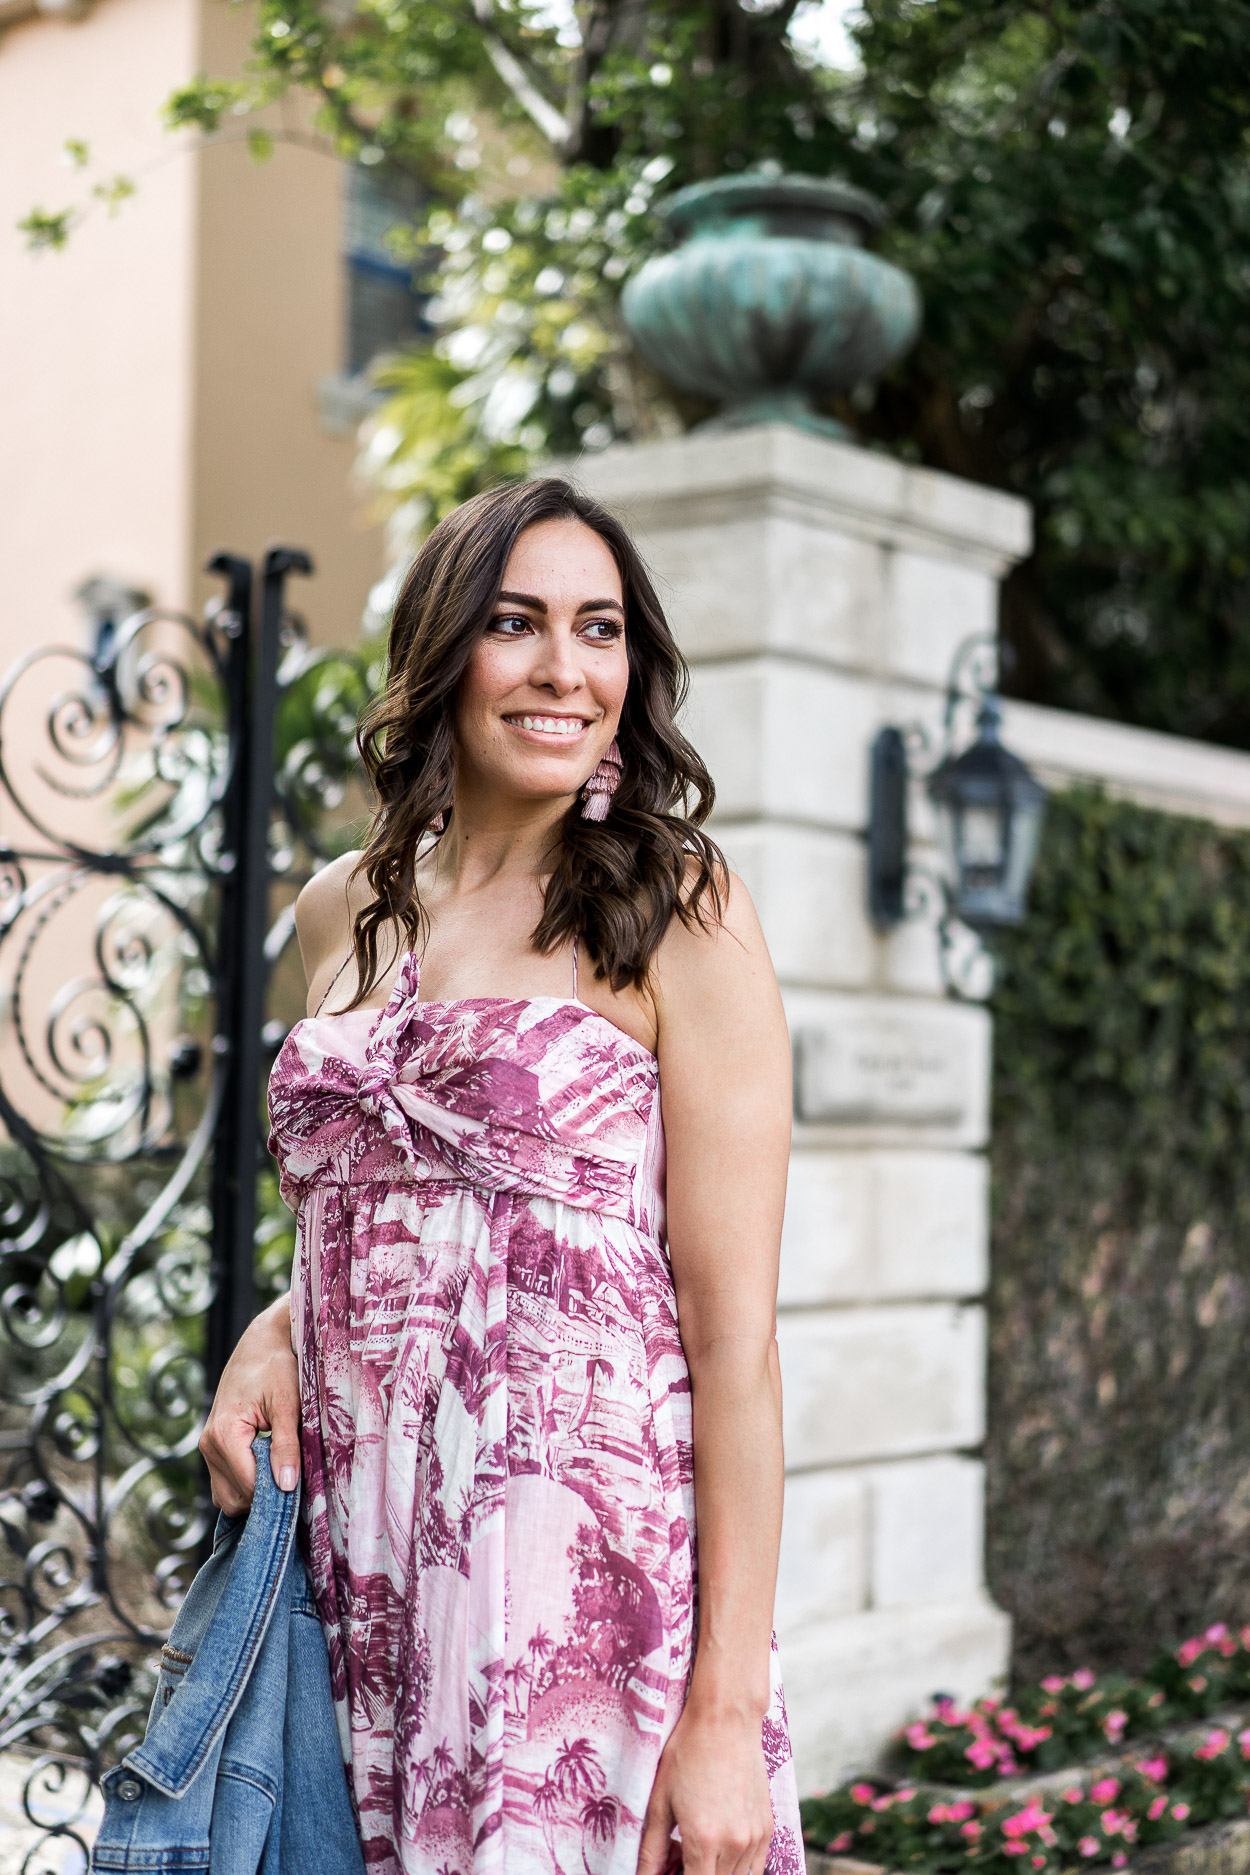 73d98c1006 ... prints like this ZImmermann Kali maxi dress · Club Monaco tassel  earrings make for perfect Palm Beach style accessories styled by Amanda of  A ...